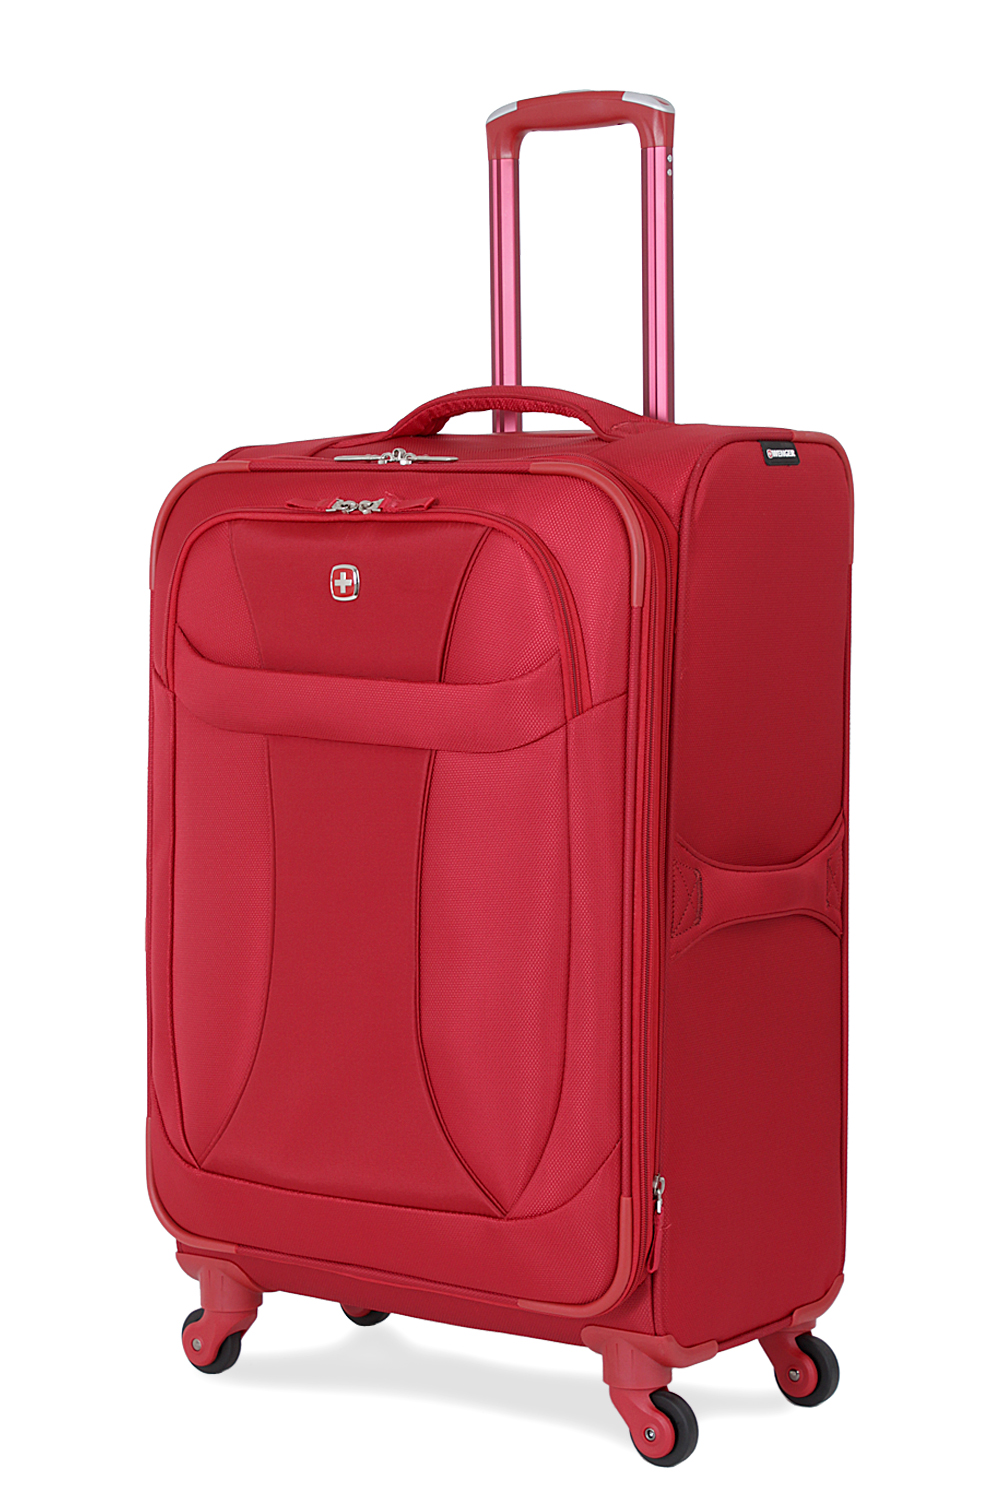 SWISSGEAR 7208 24 Expandable Liteweight Spinner - Deep Red Luggage